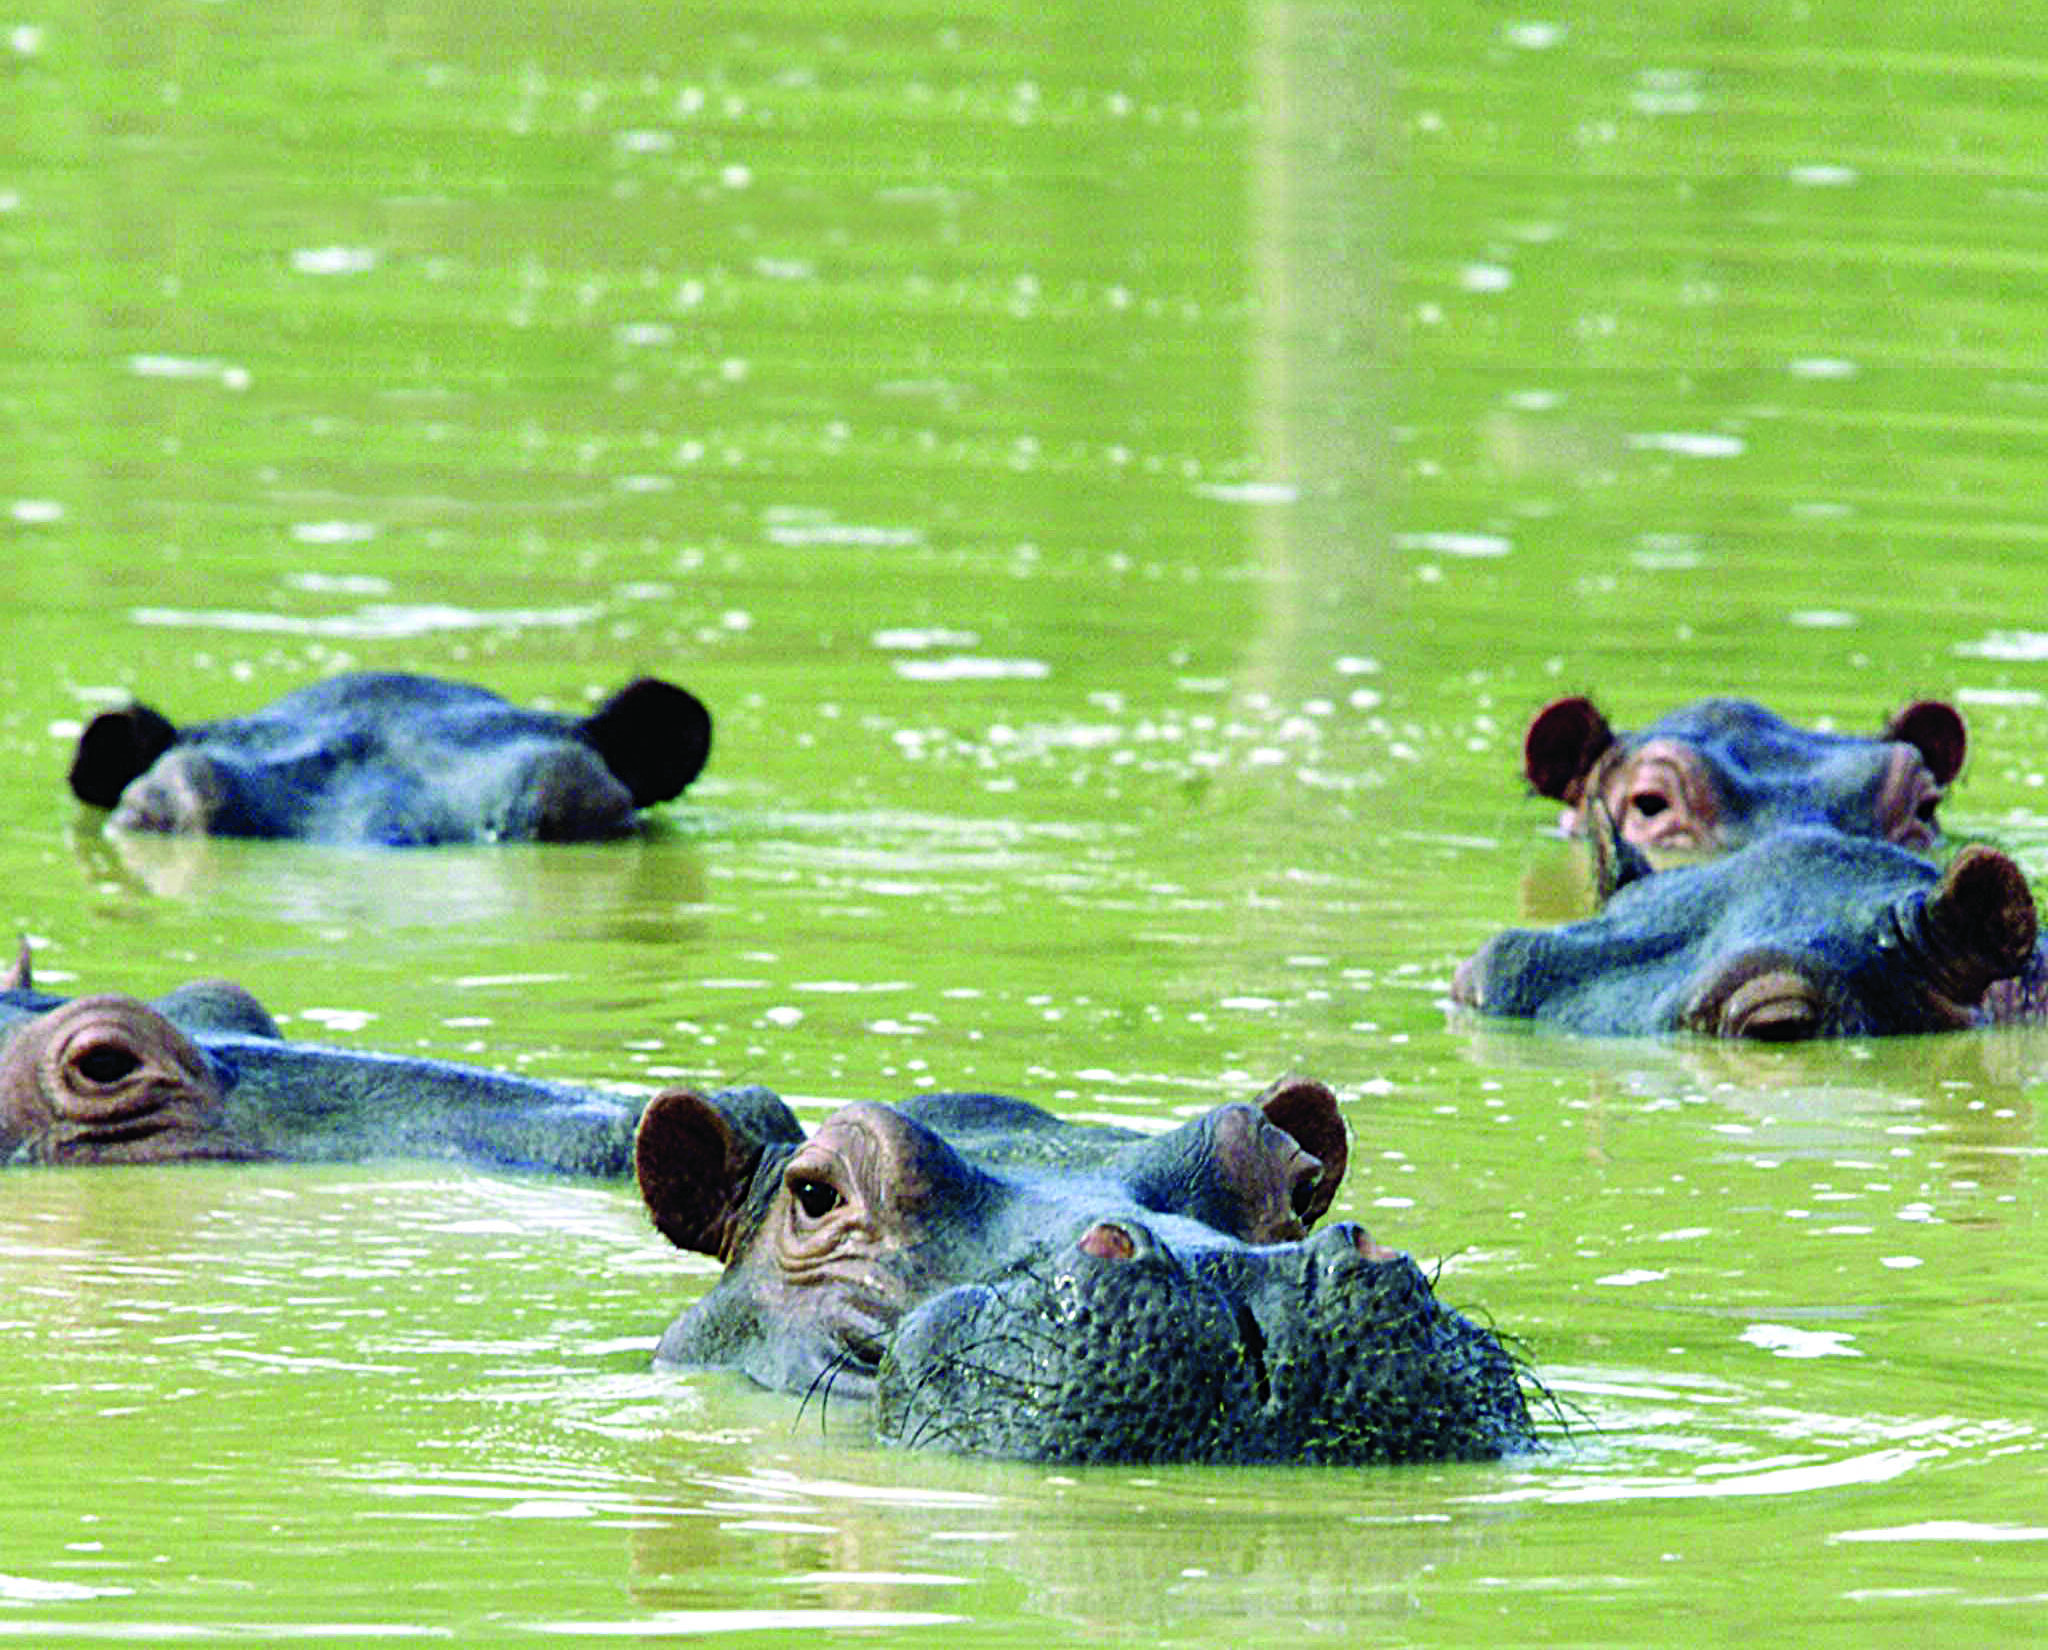 Beloved Colombian hippos pose environmental dilemma